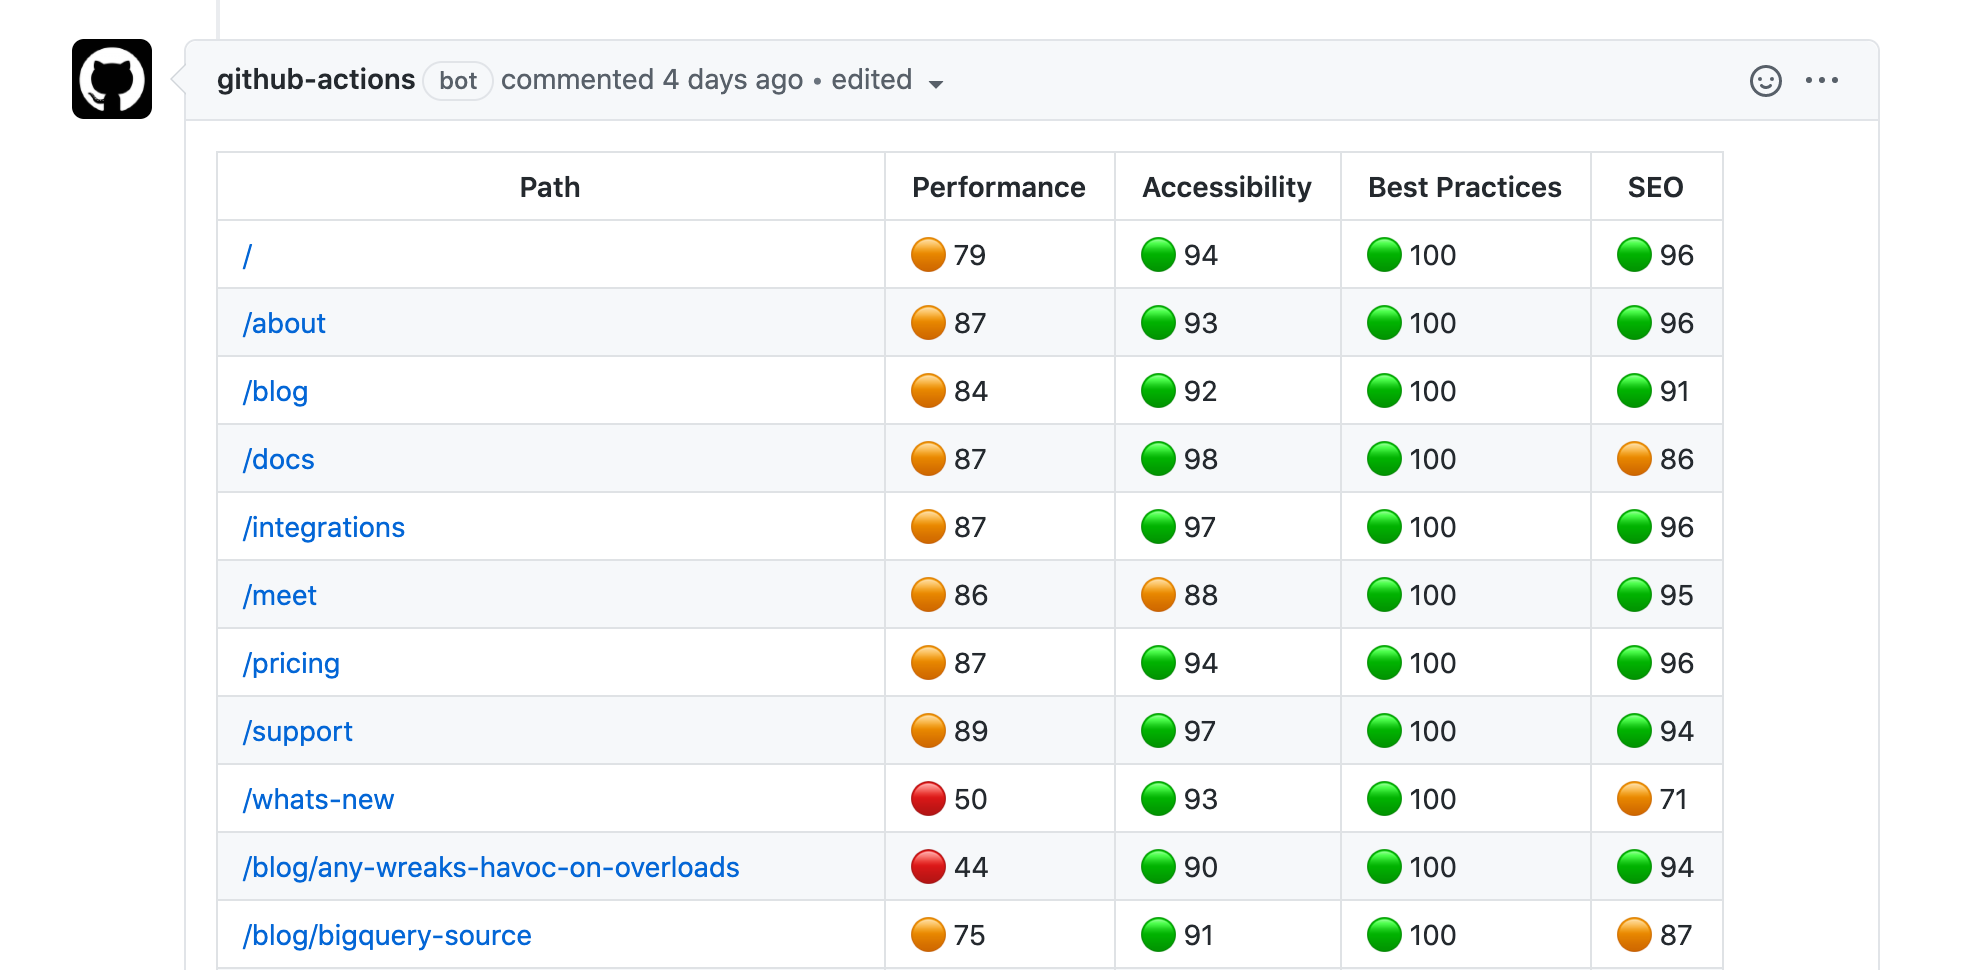 Lighthouse report as a Github comment